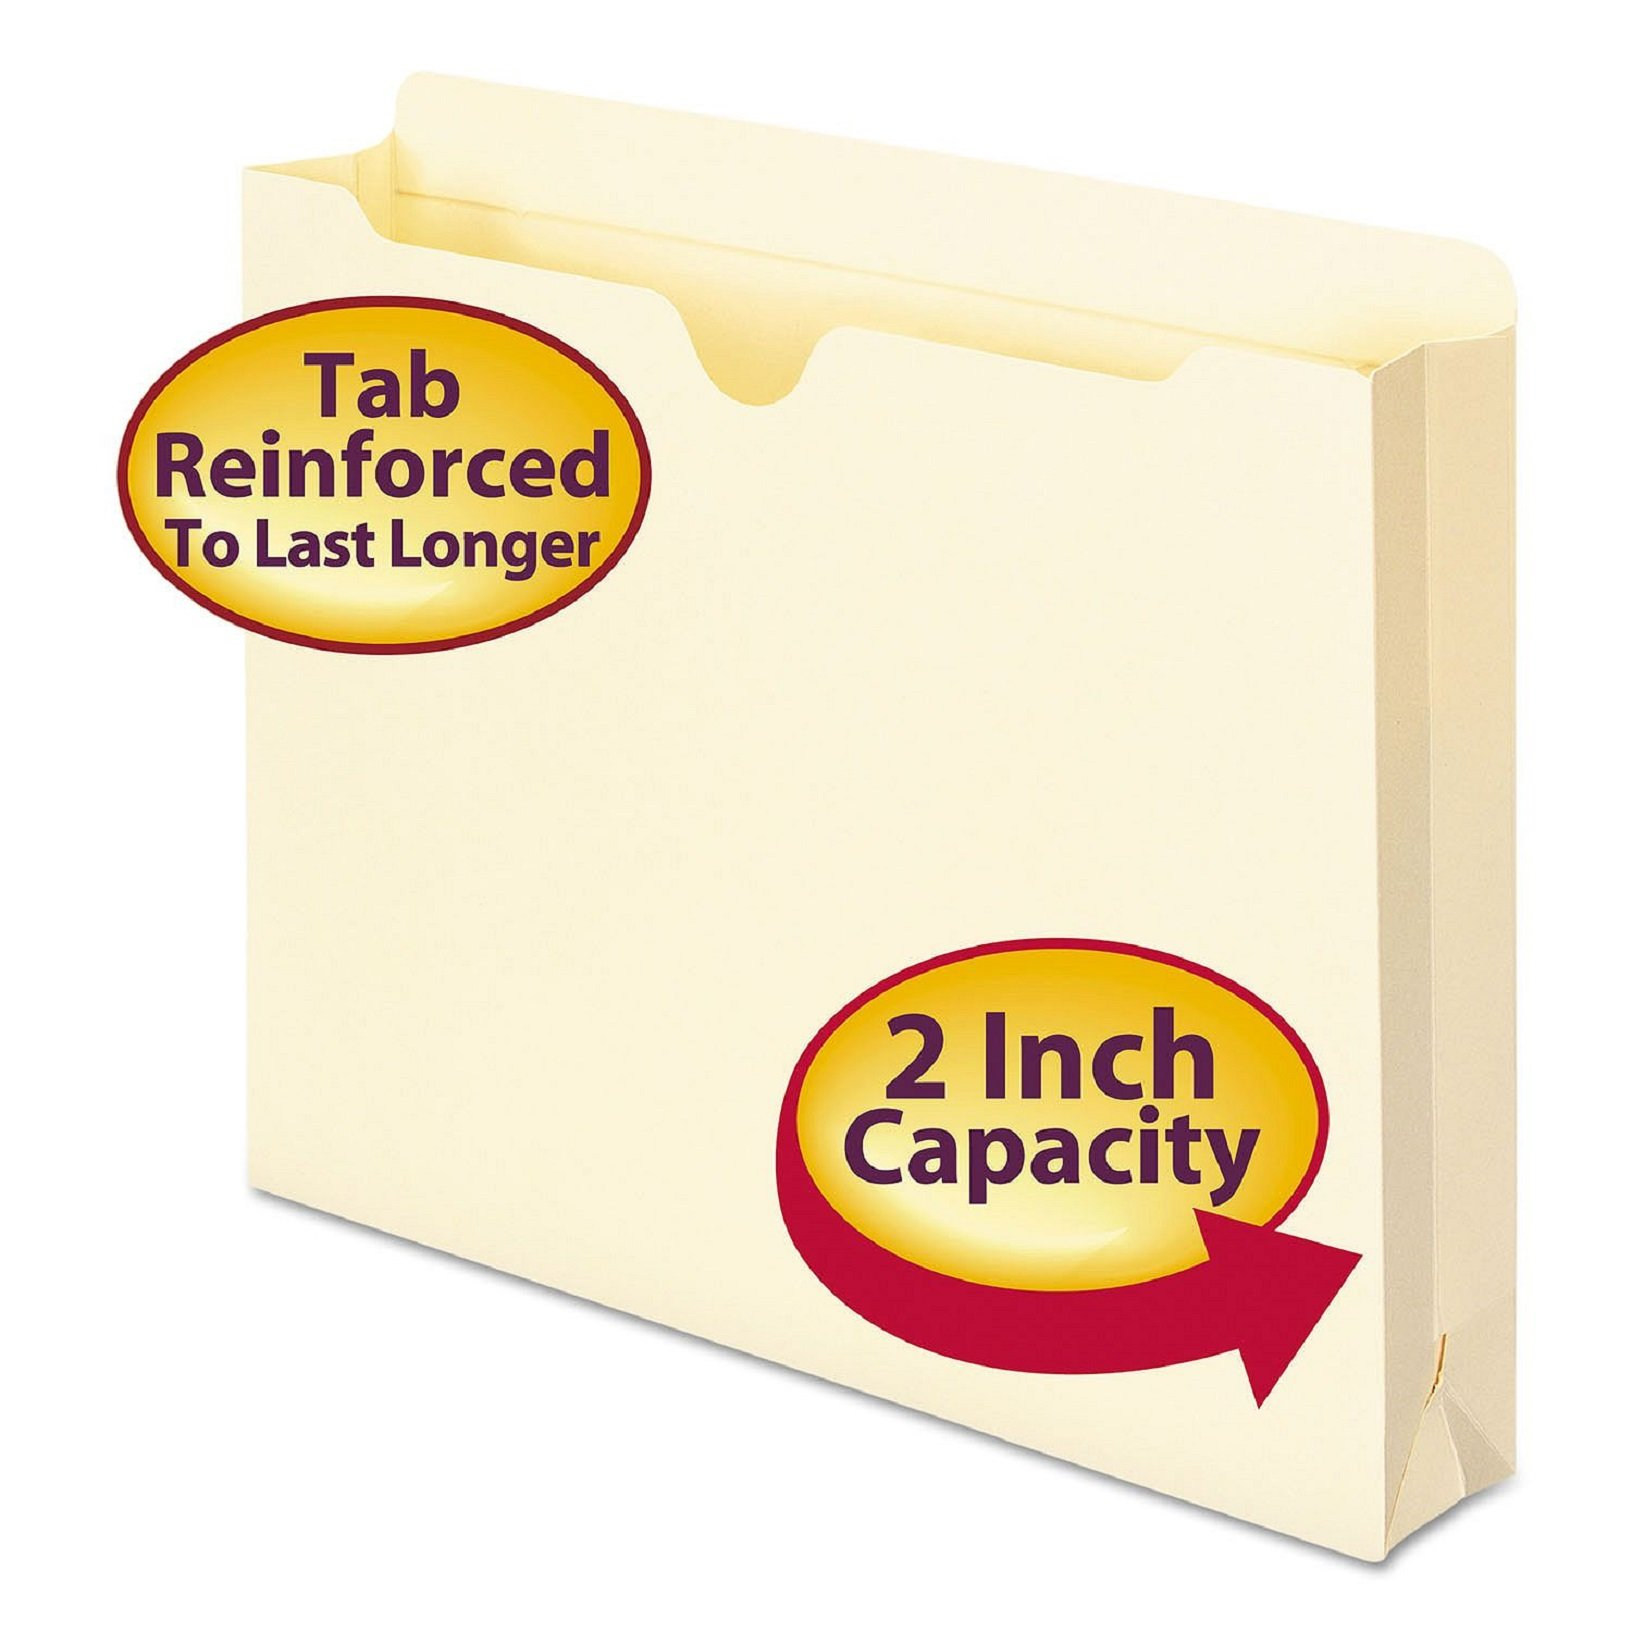 Smead File Jacket, Reinforced Straight Cut Tab, 2 inch Expansion, Letter Size, Manila rpmnHM, 200 count (75560)